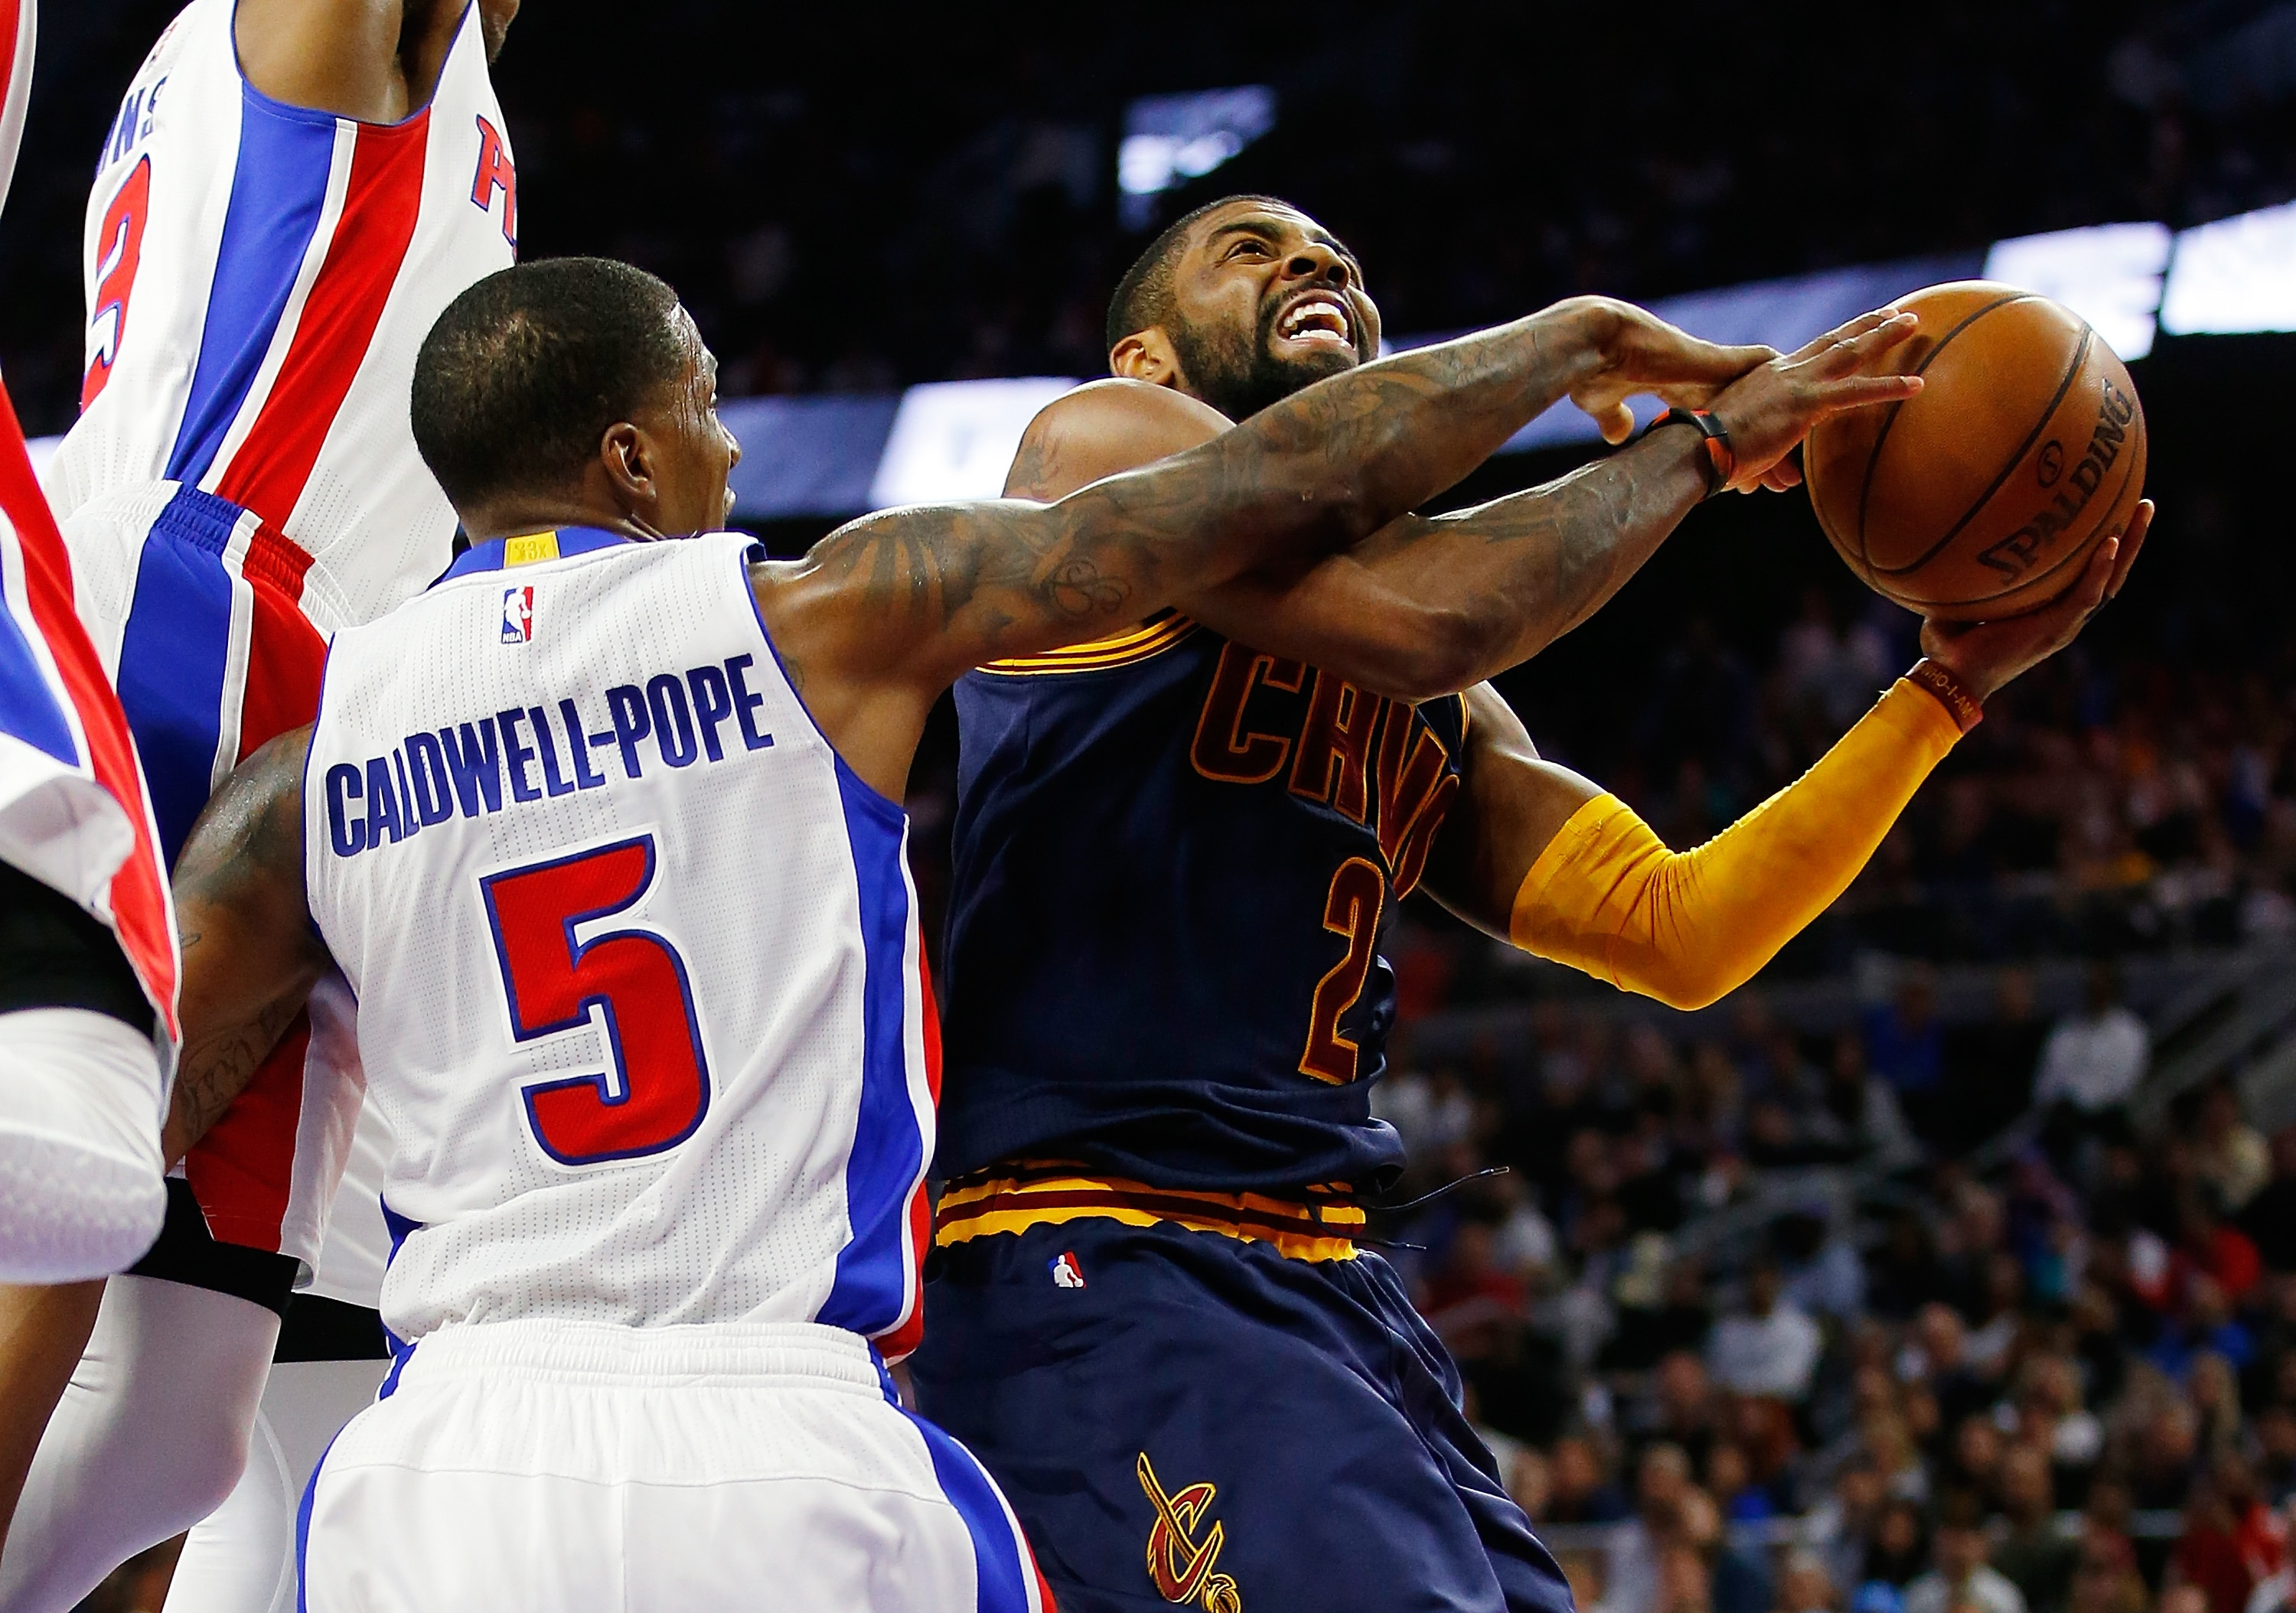 Kyrie Irving and the Cleveland Cavaliers are perfect in the playoffs so far.